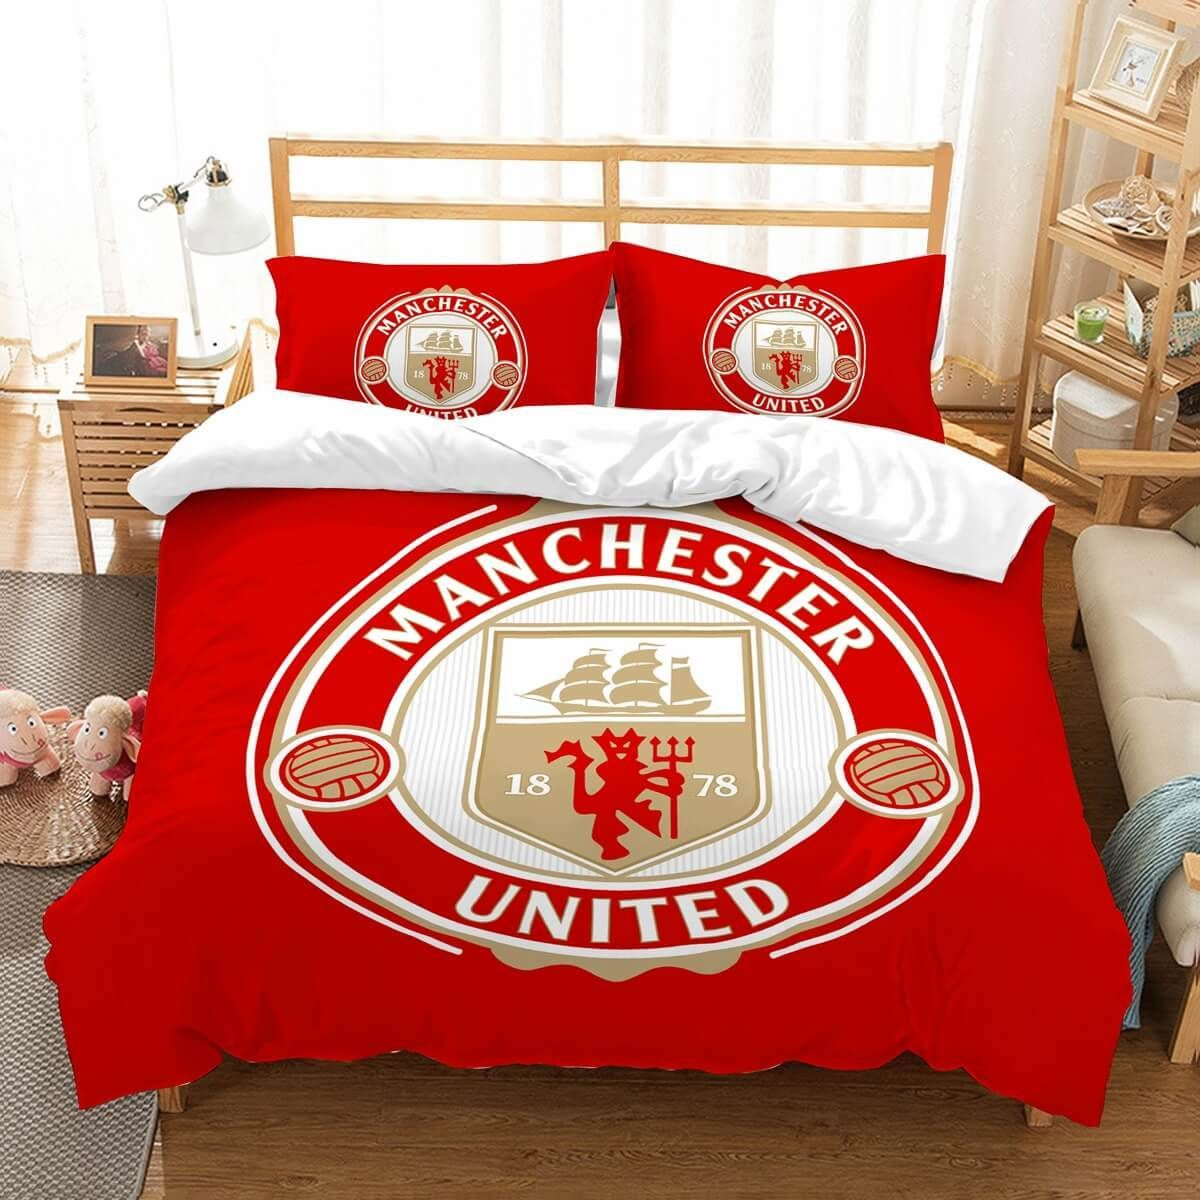 3D Customize Manchester United F.C. Bedding Set Duvet